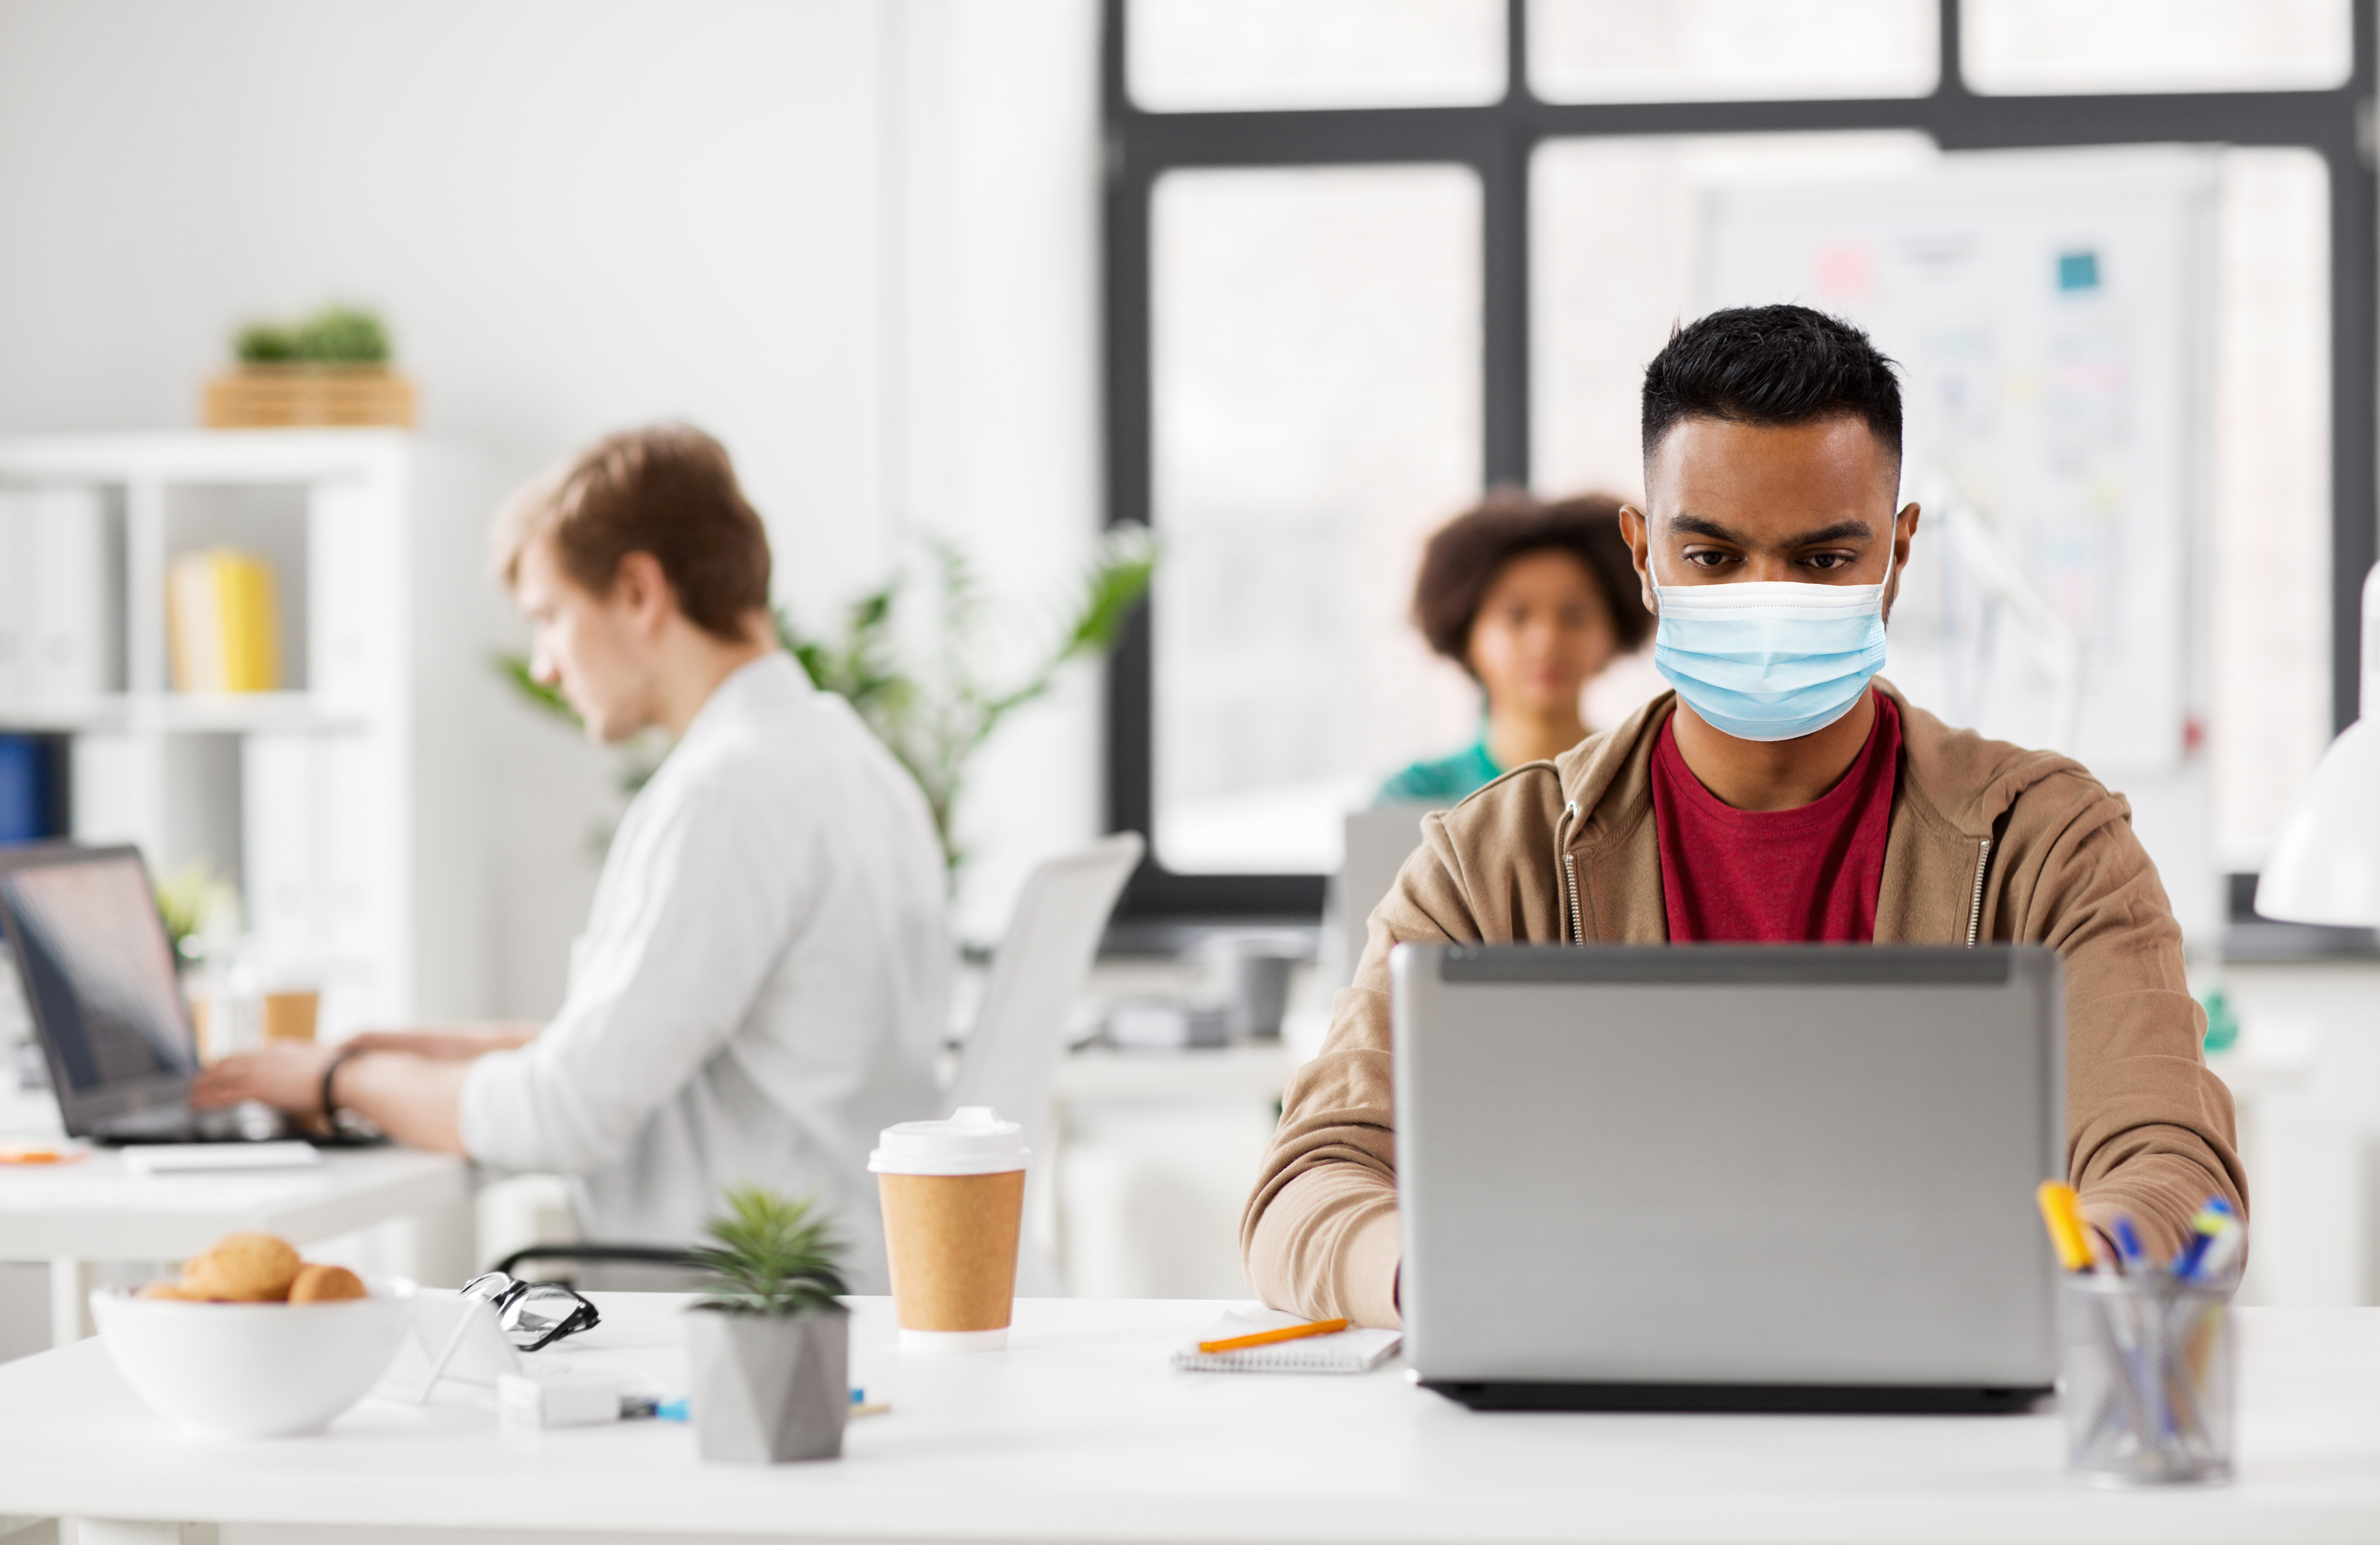 Indian Man With Laptop In Medical Mask At Office